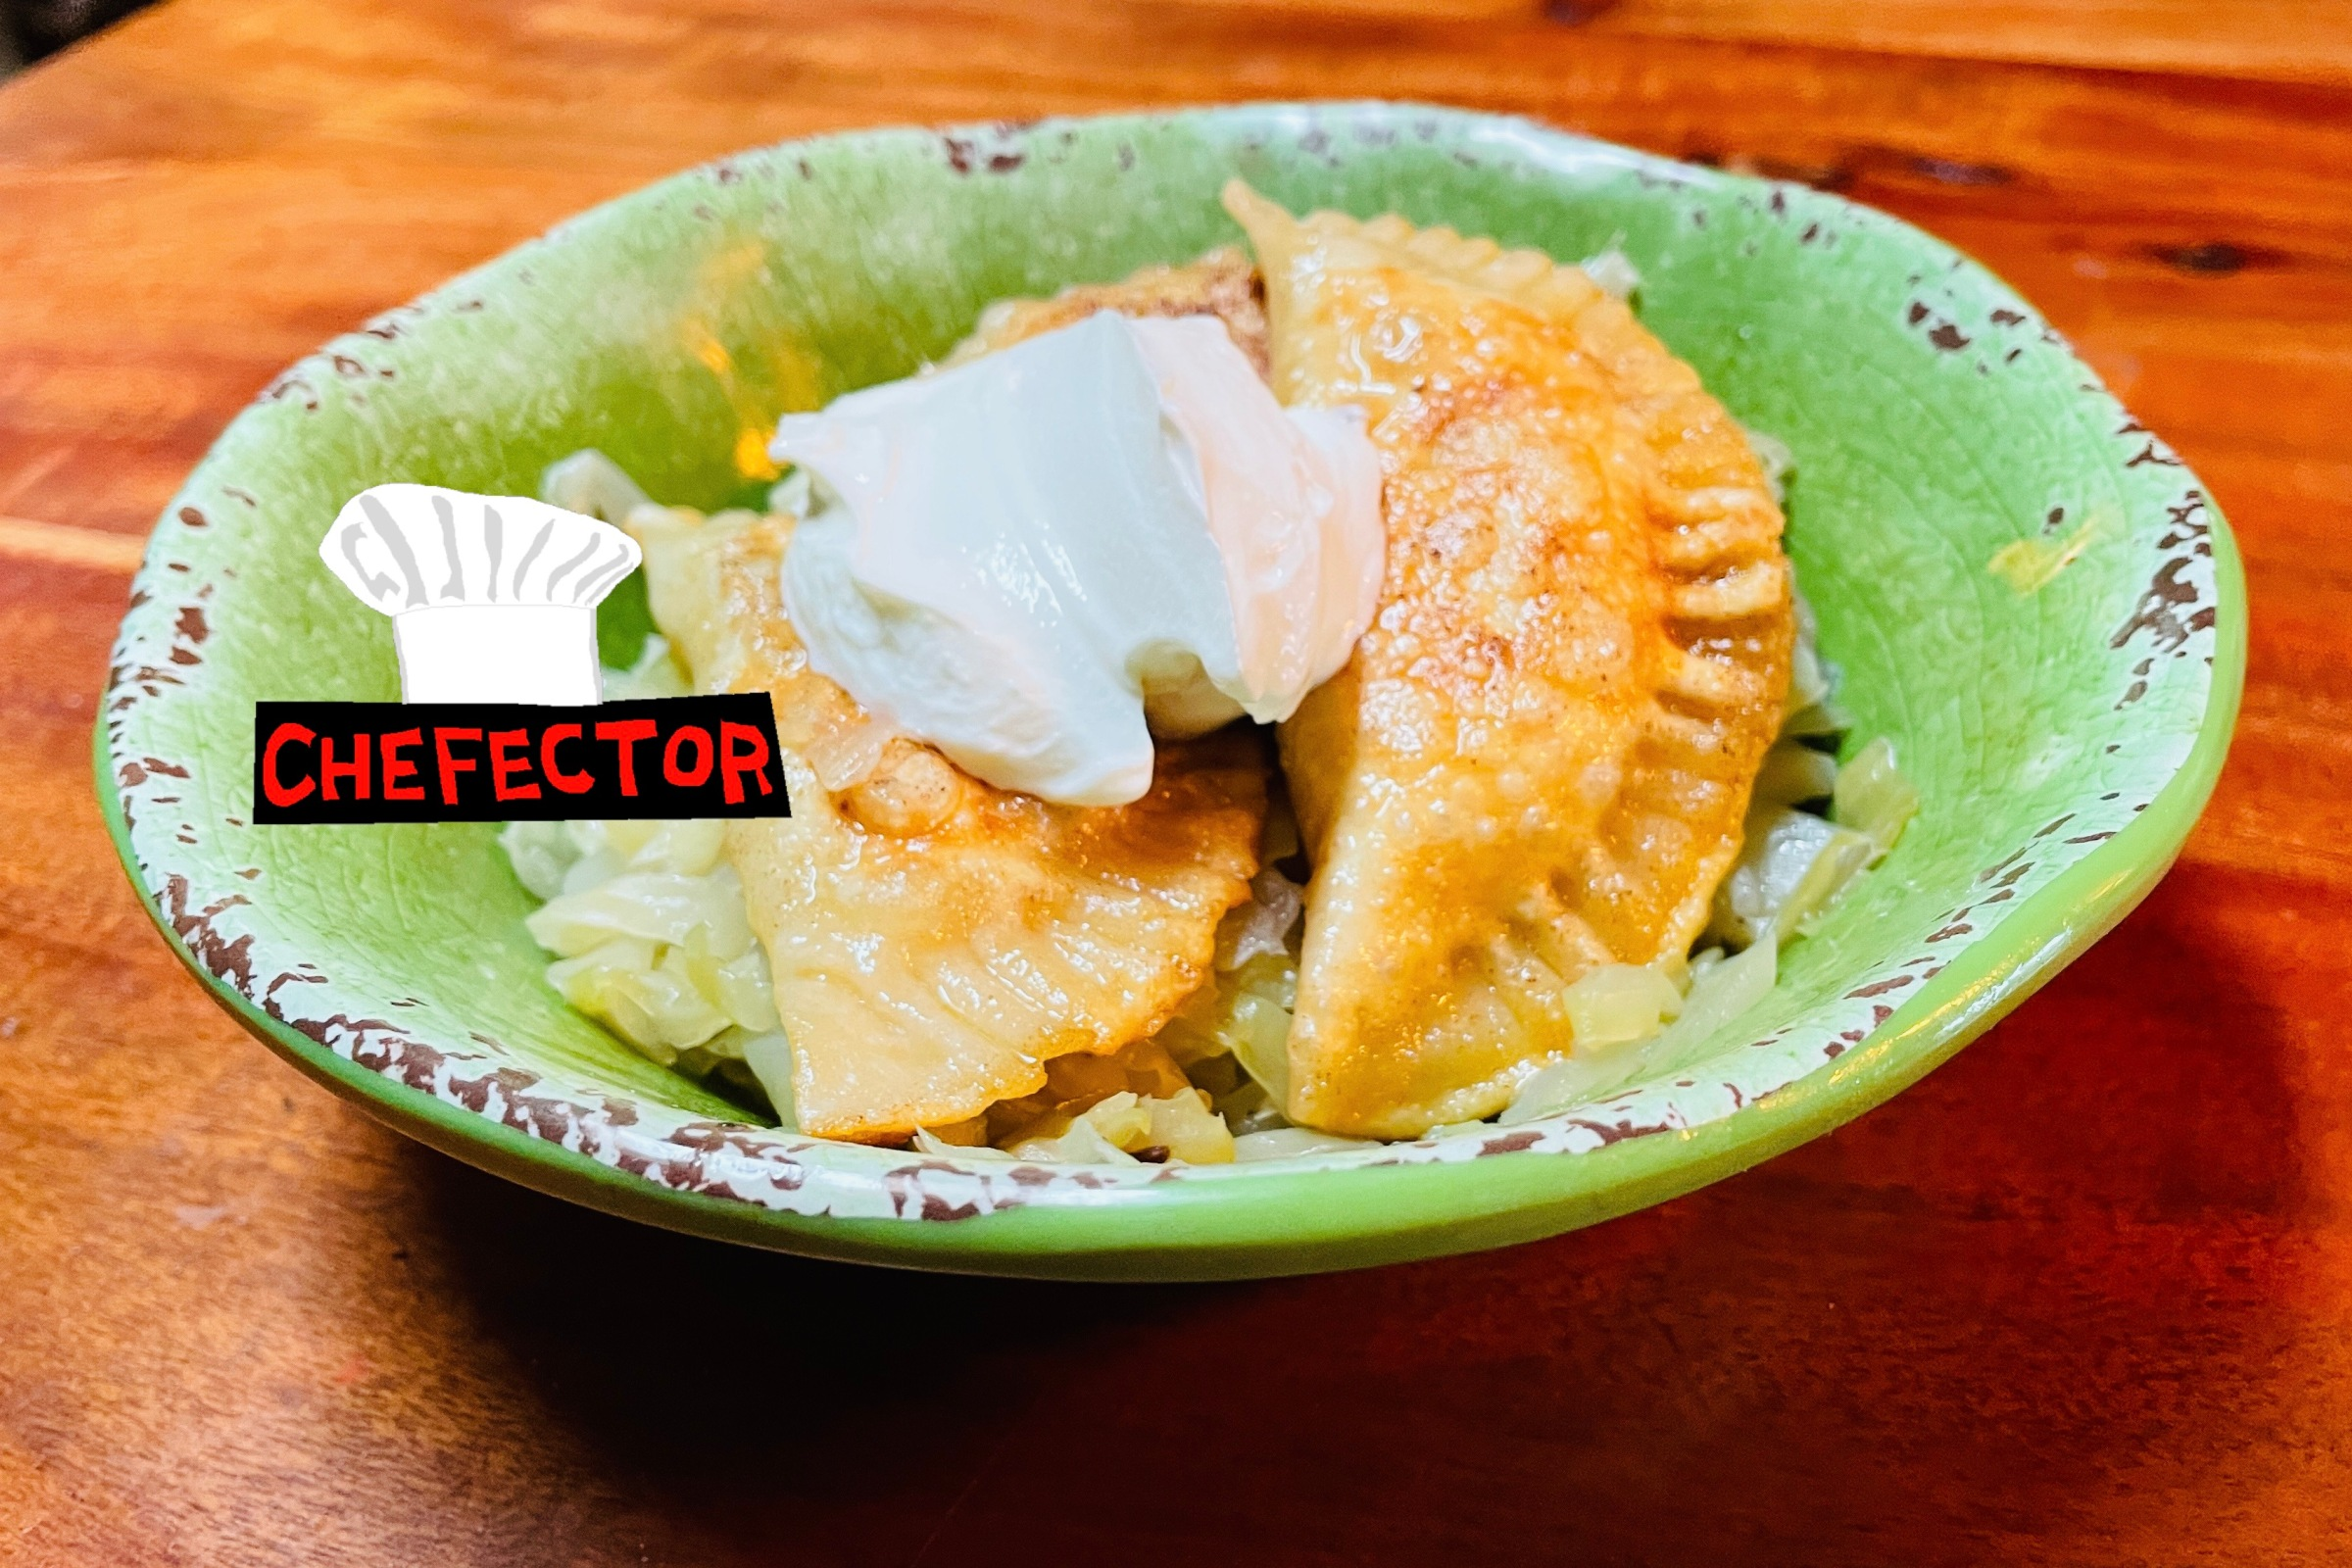 A bowl of pierogi with cabbage and sour cream